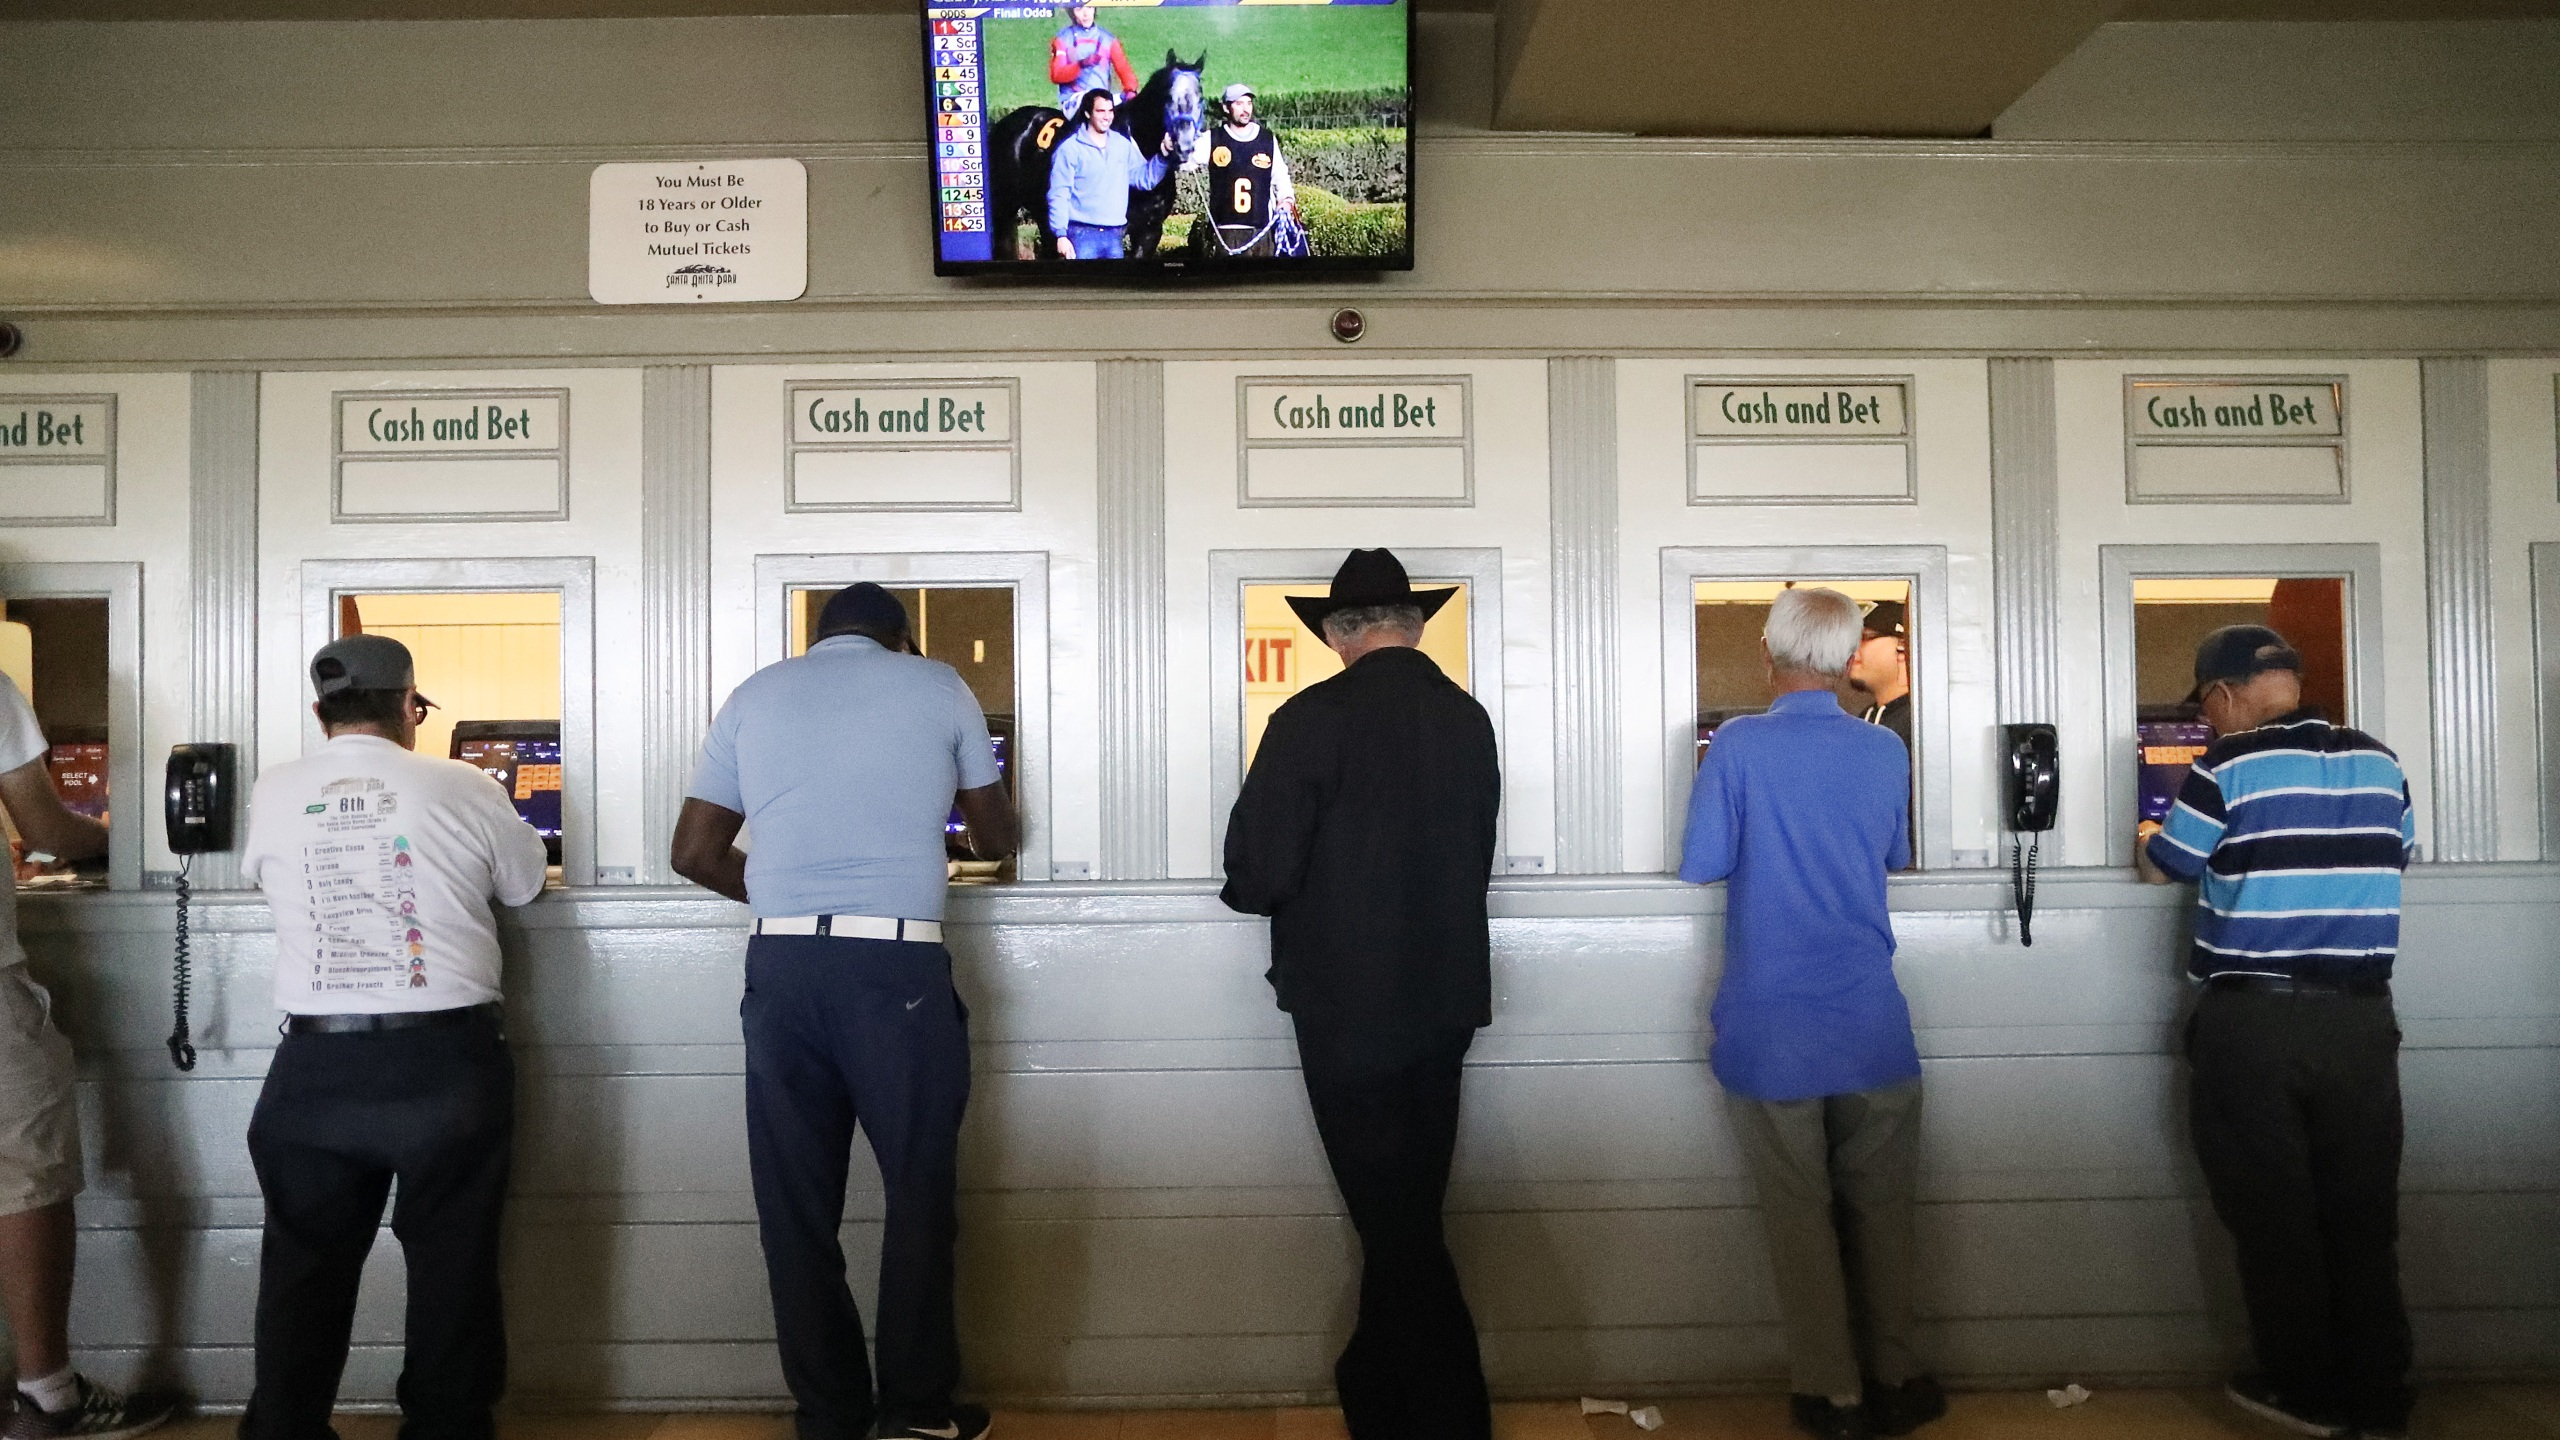 Gamblers stand at betting windows on the final day of the winter/spring horse racing season at Santa Anita Park on June 23, 2019 in Arcadia, California. (Mario Tama/Getty Images)